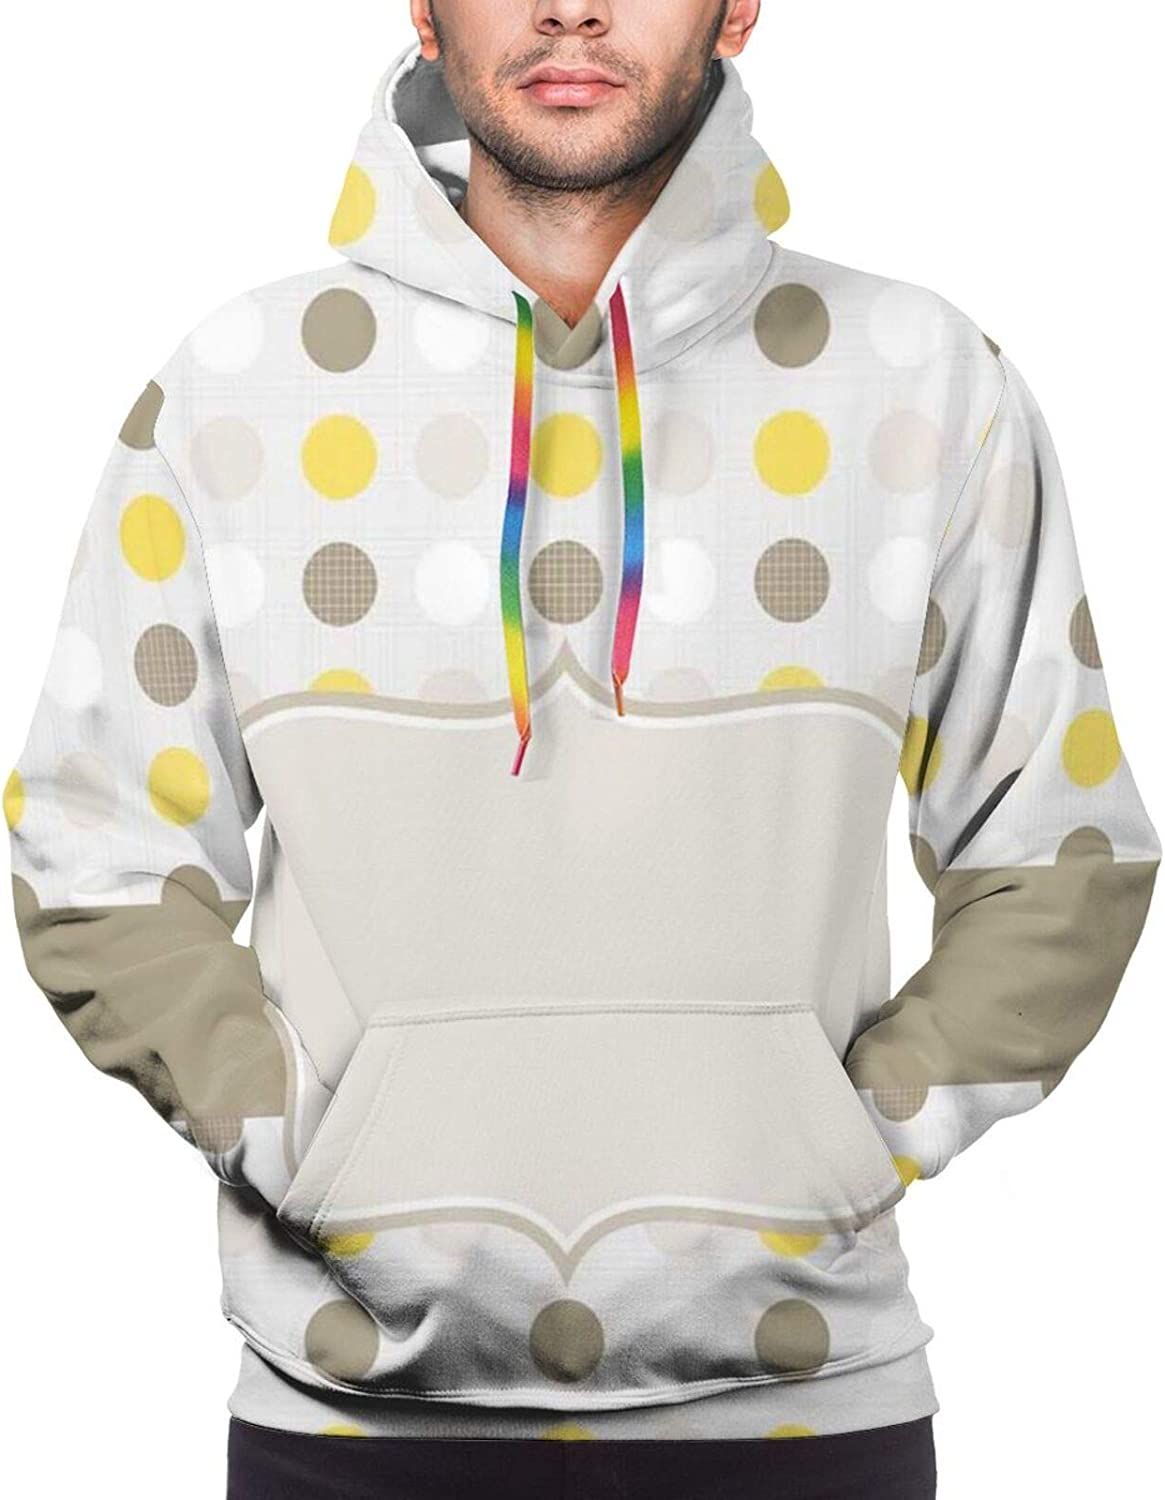 Men's Hoodies Sweatshirts,ABC of Athleticism Theme Letter Y with Different Balls with Realistic Look